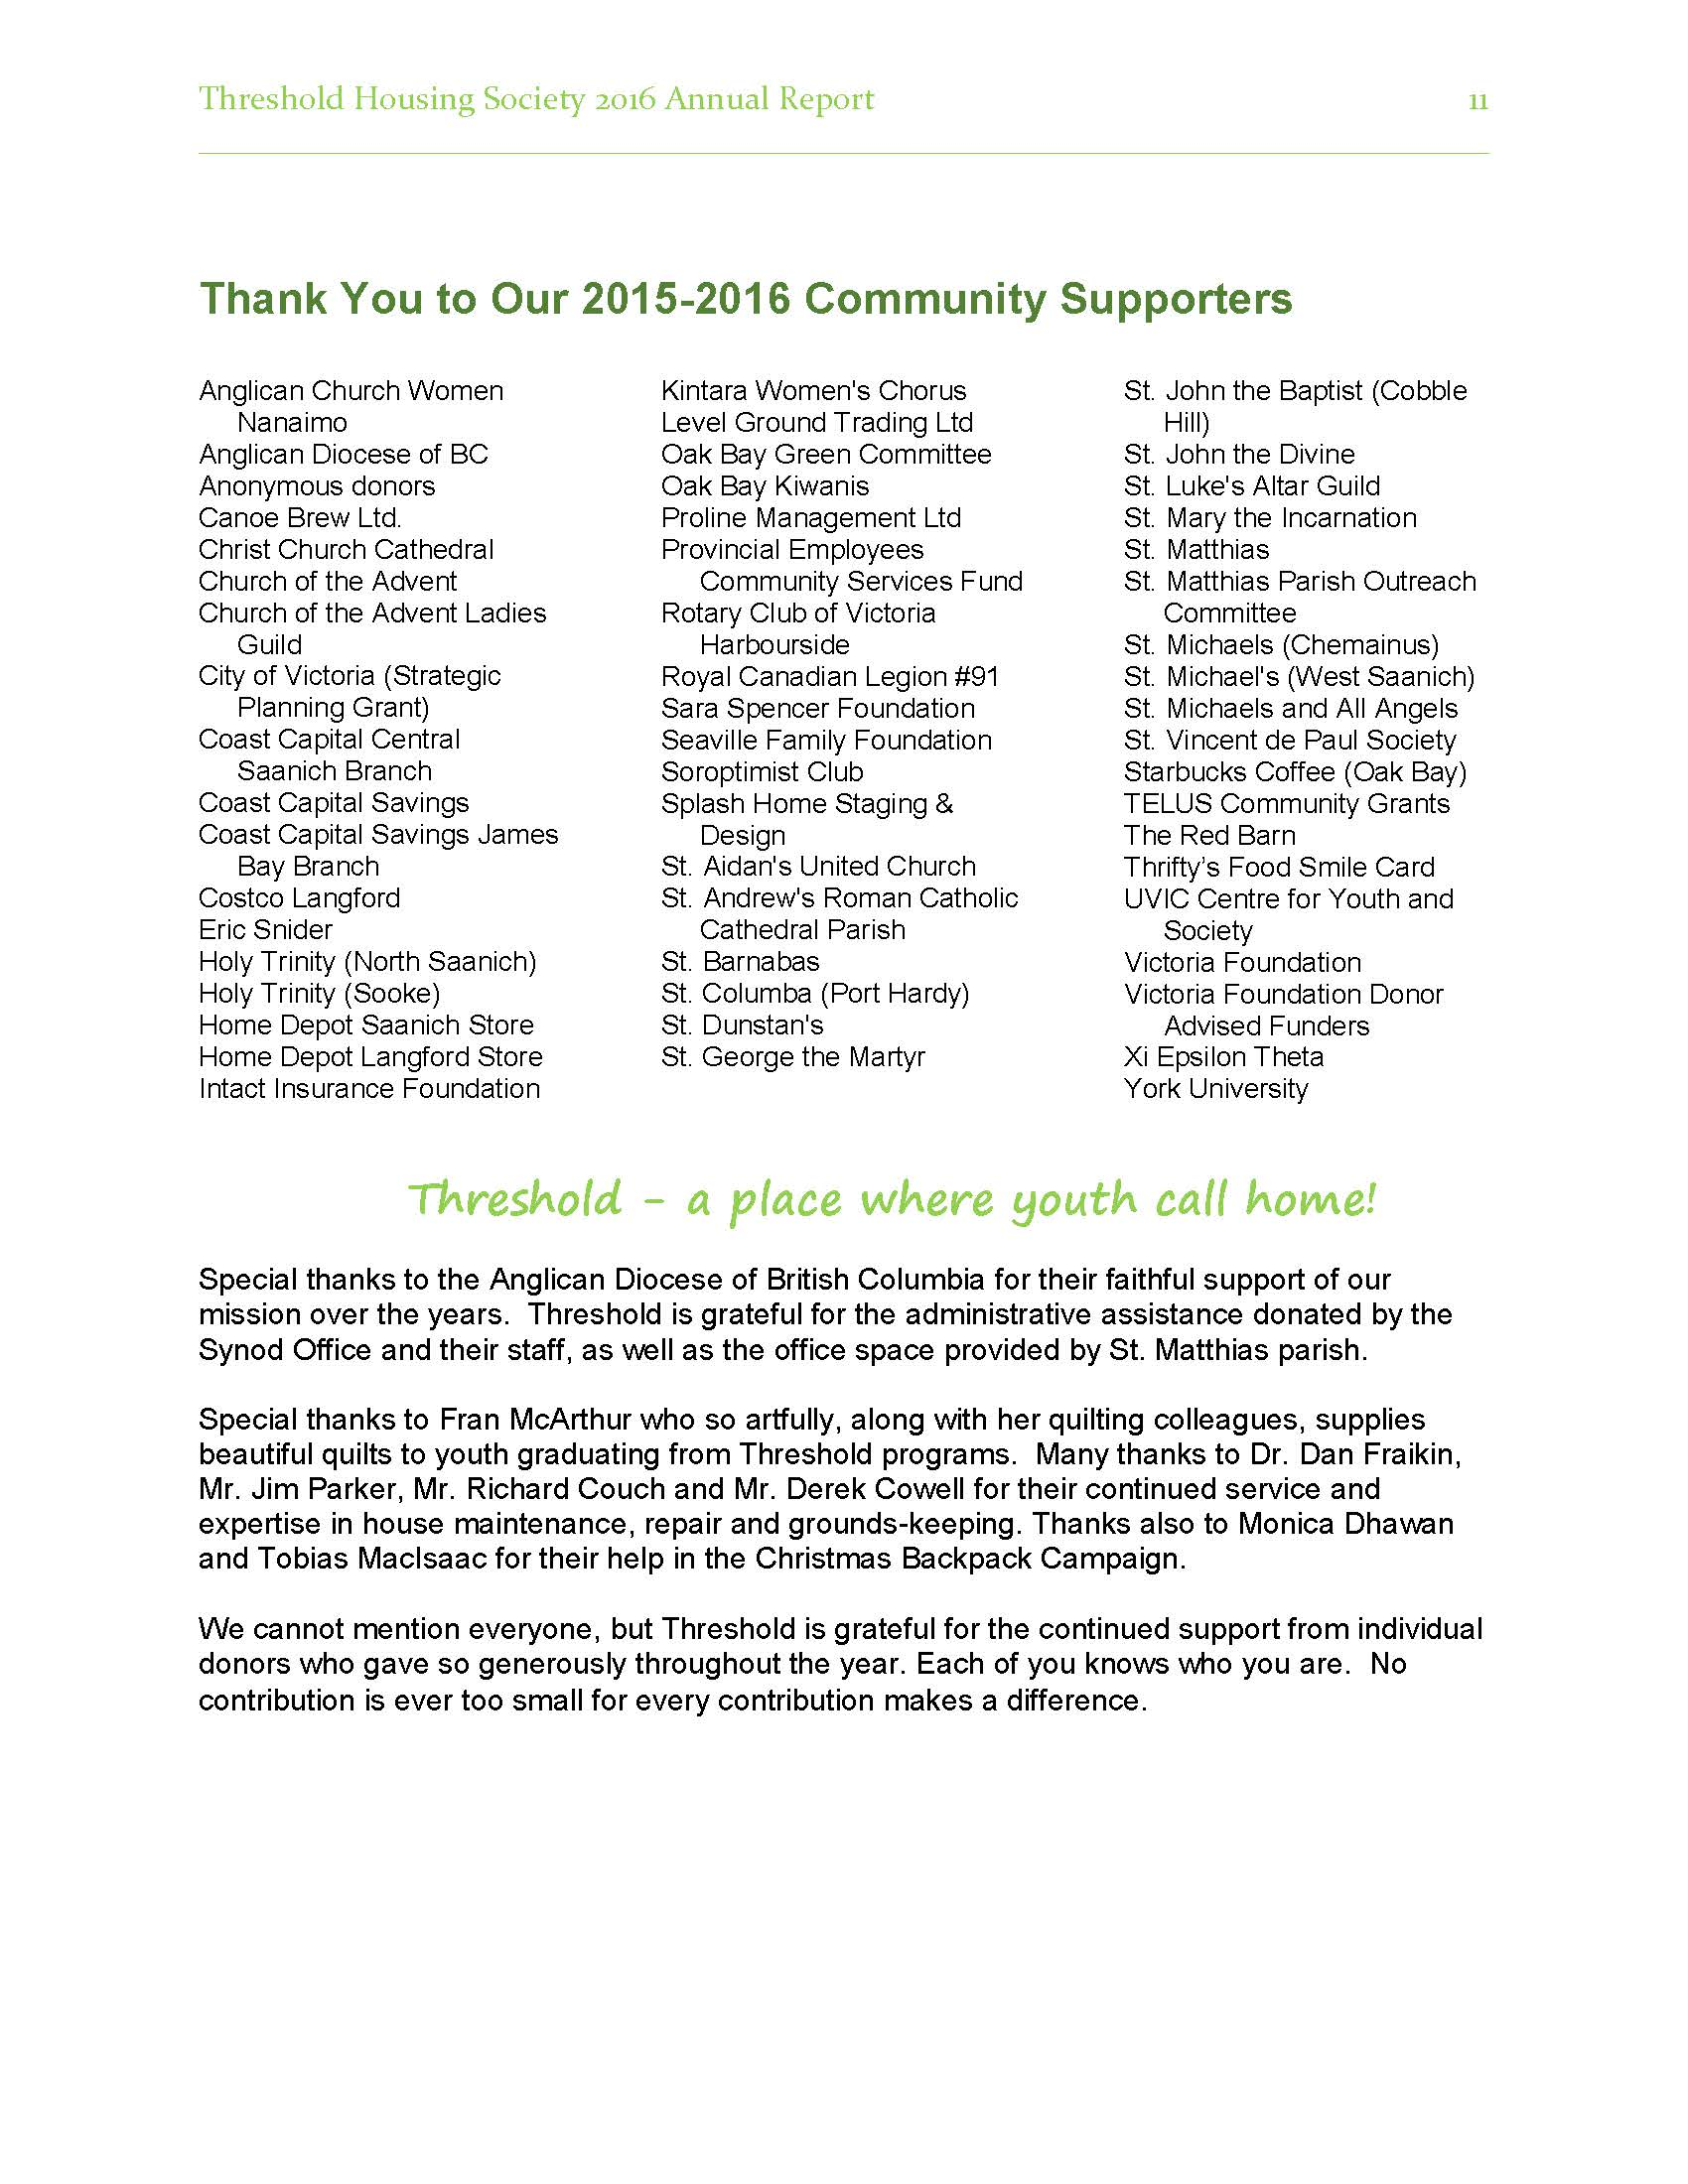 2016_THS_AnnualReport-FINAL compressed_Page_23